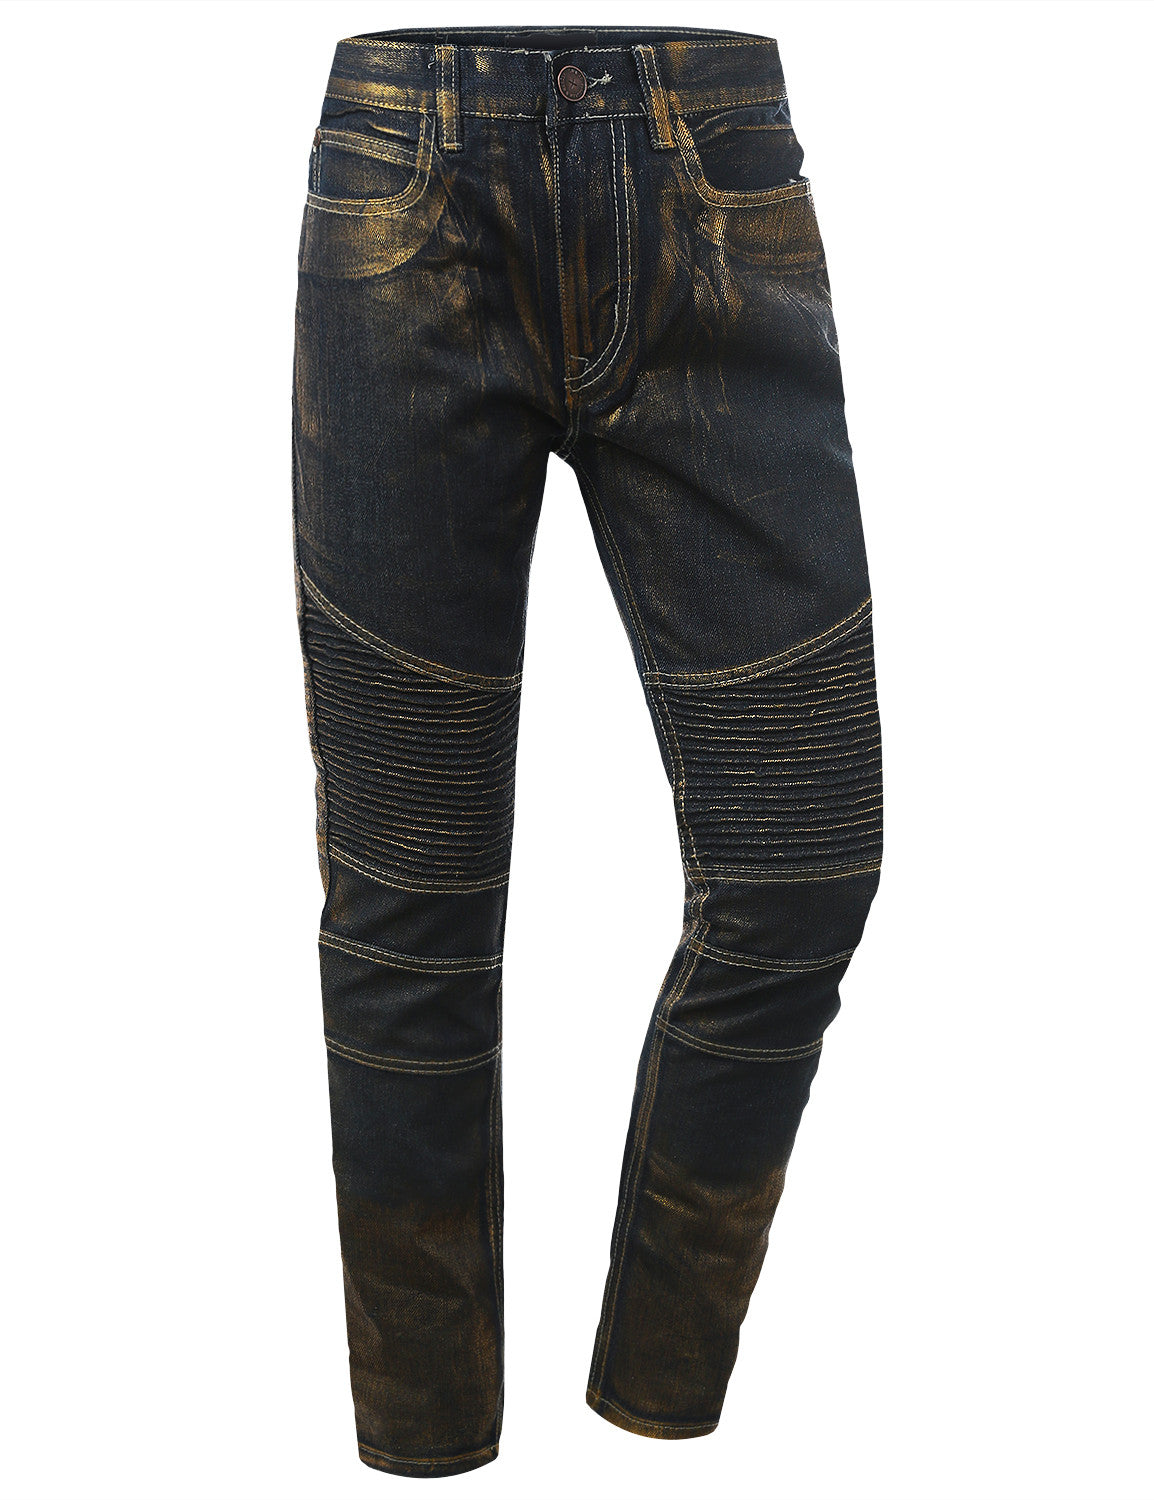 GOLD Slim Taper Fit Denim Biker Jeans - URBANCREWS